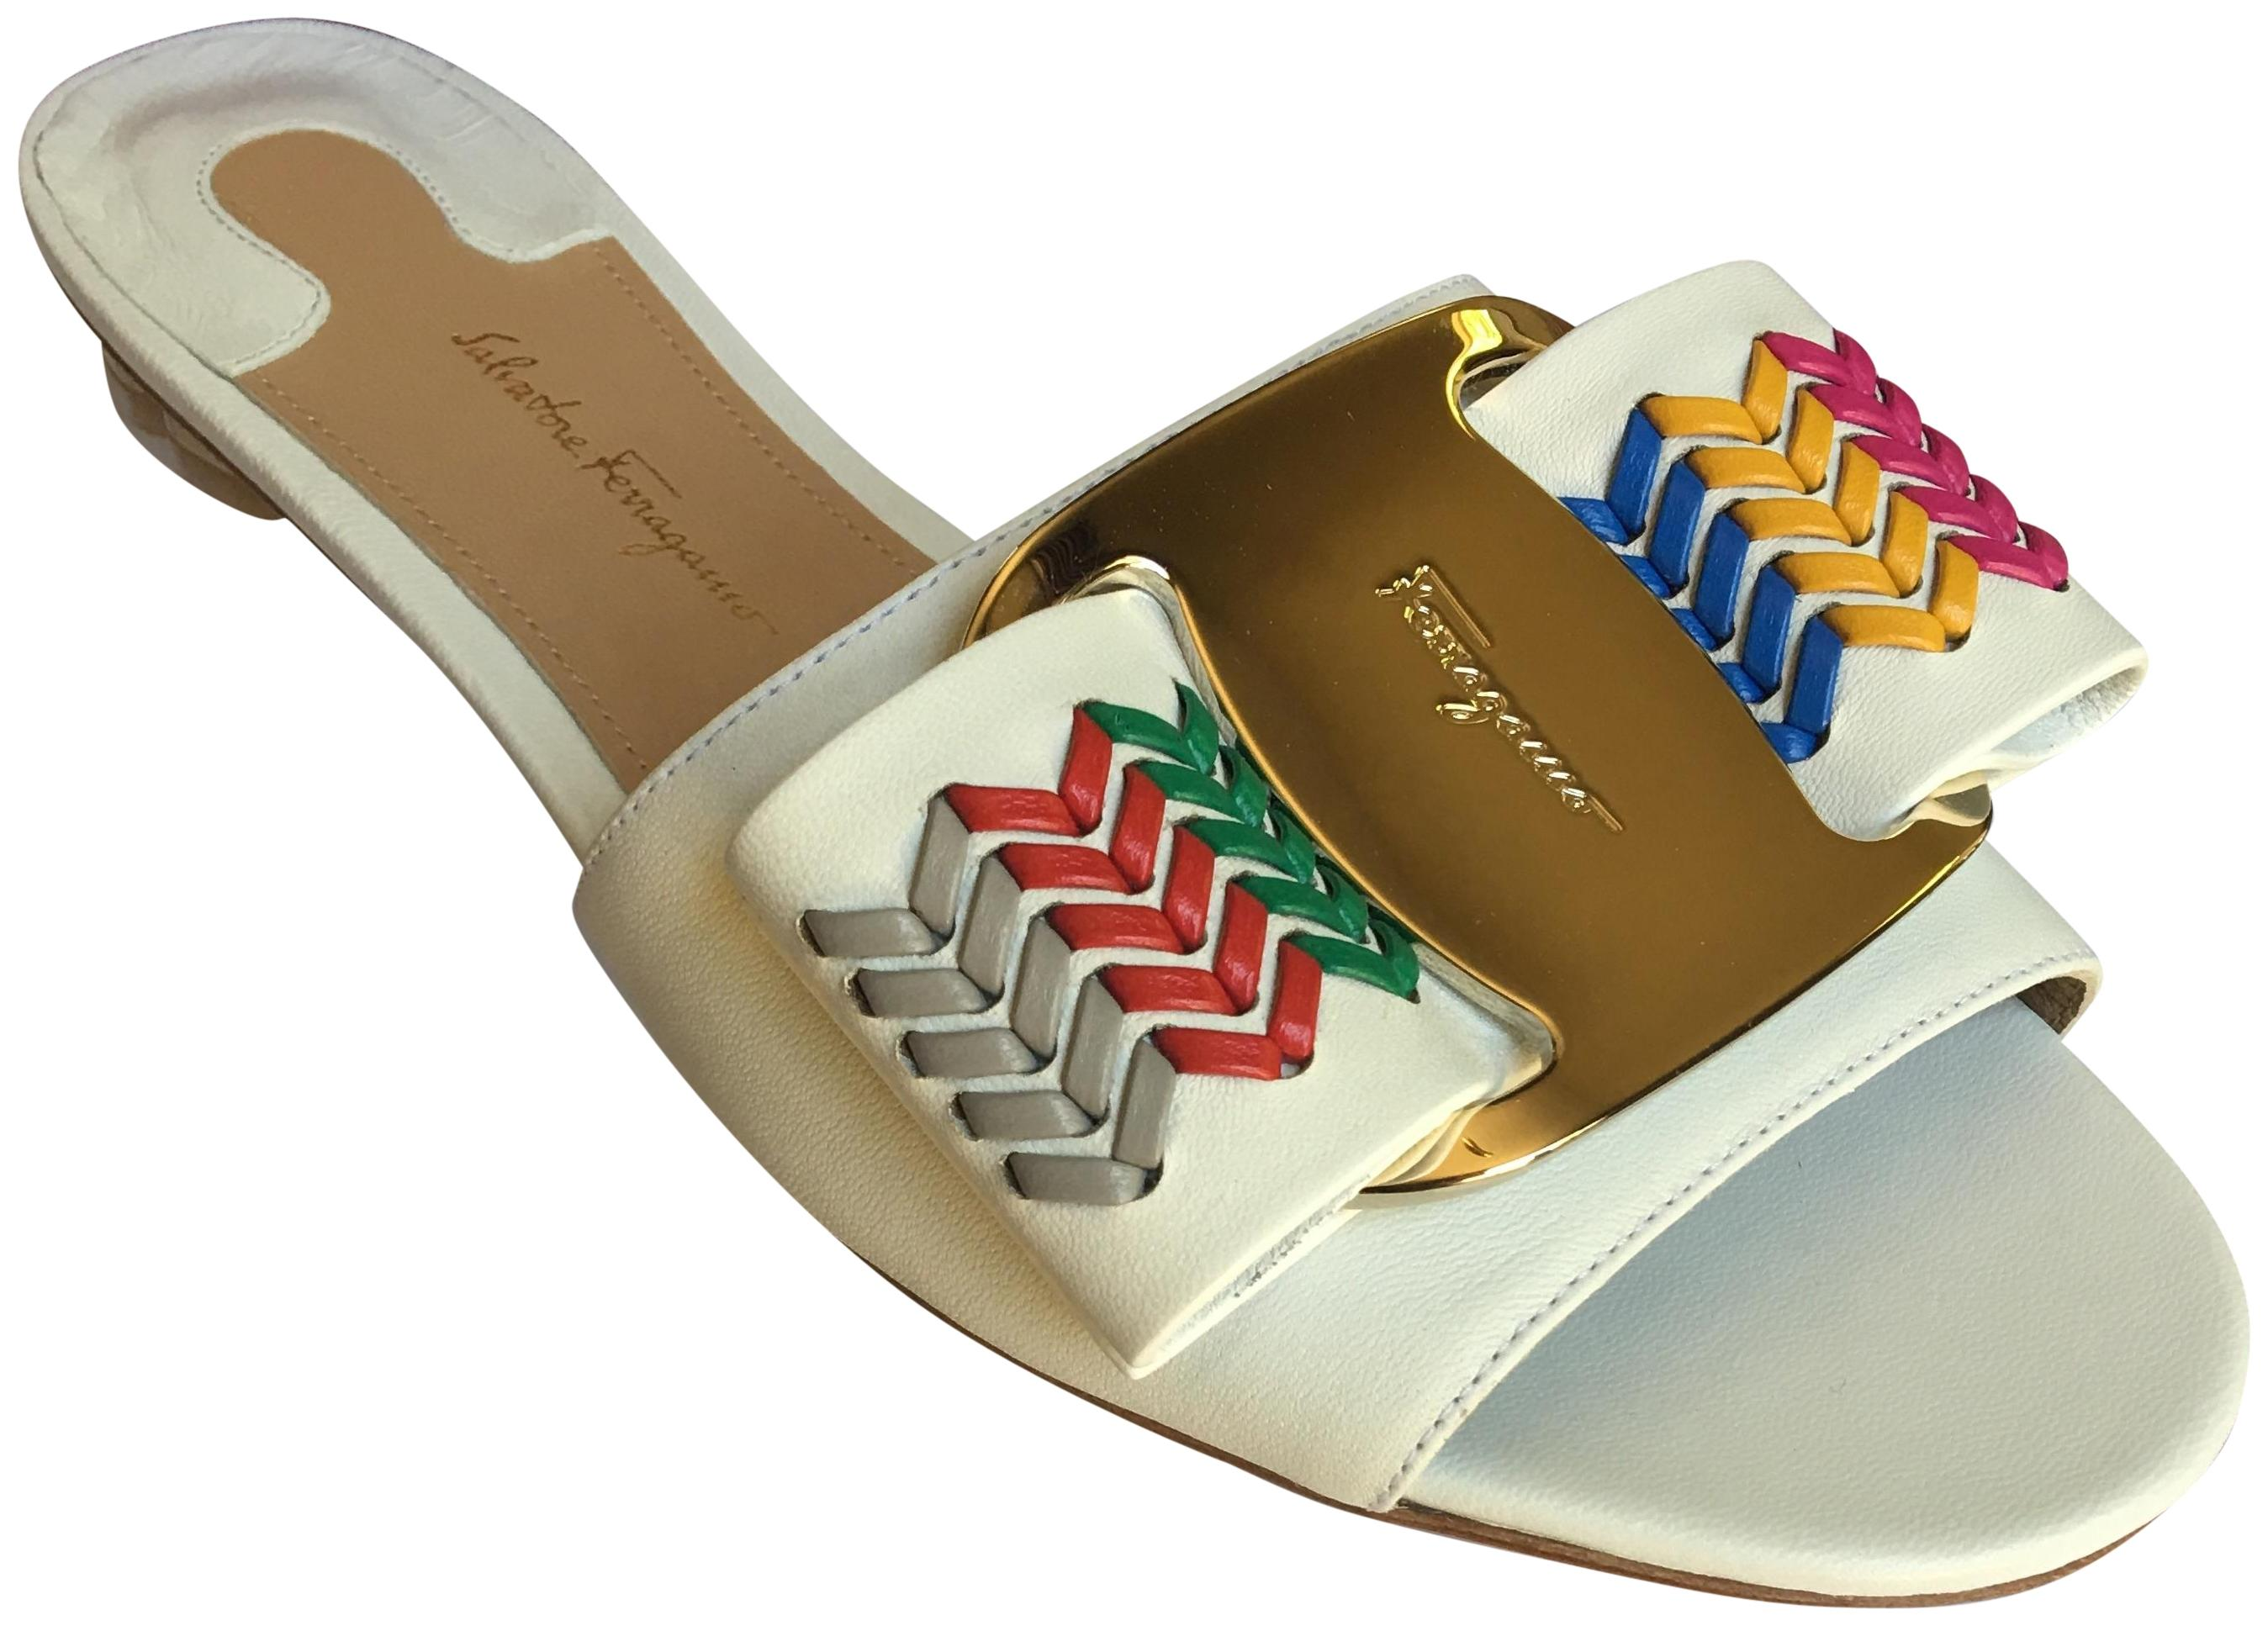 aa1b2190e Salvatore Ferragamo Ferragamo Ferragamo New Bianco Women s Woven Leather  Tolve Bow Slide Sandals Flats Size US